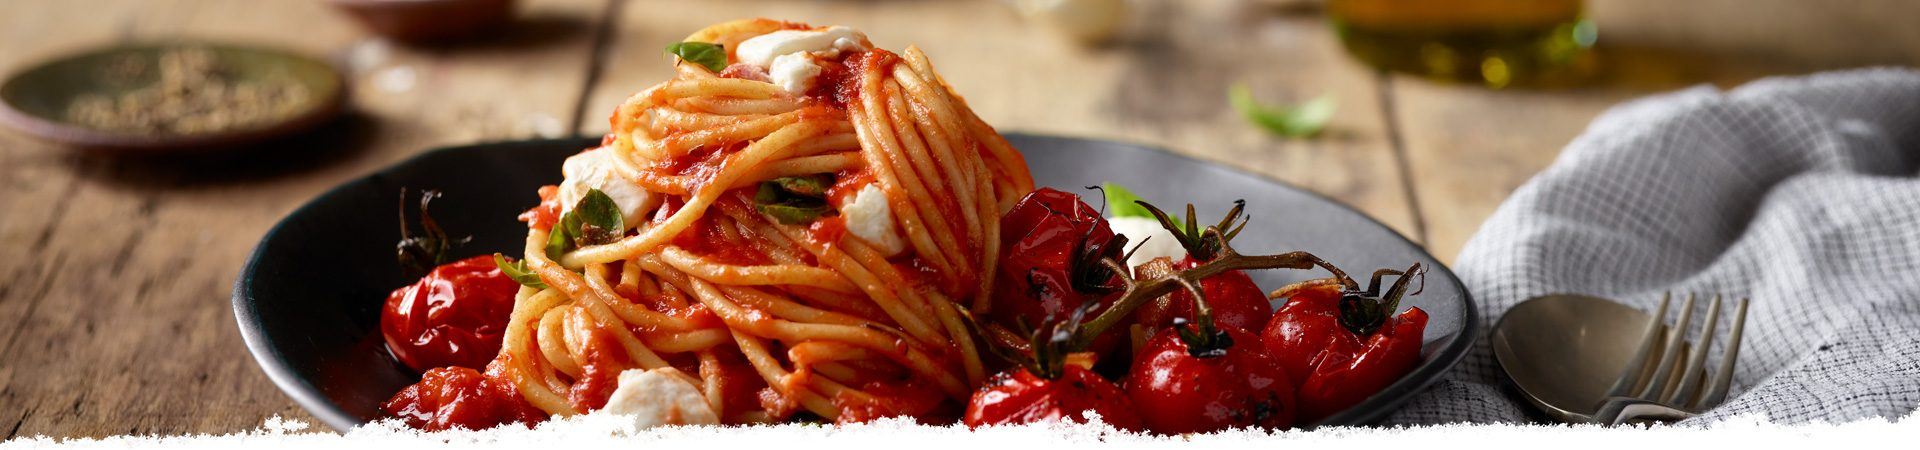 Spaghetti with Burrata & Blistered Cherry Tomatoes